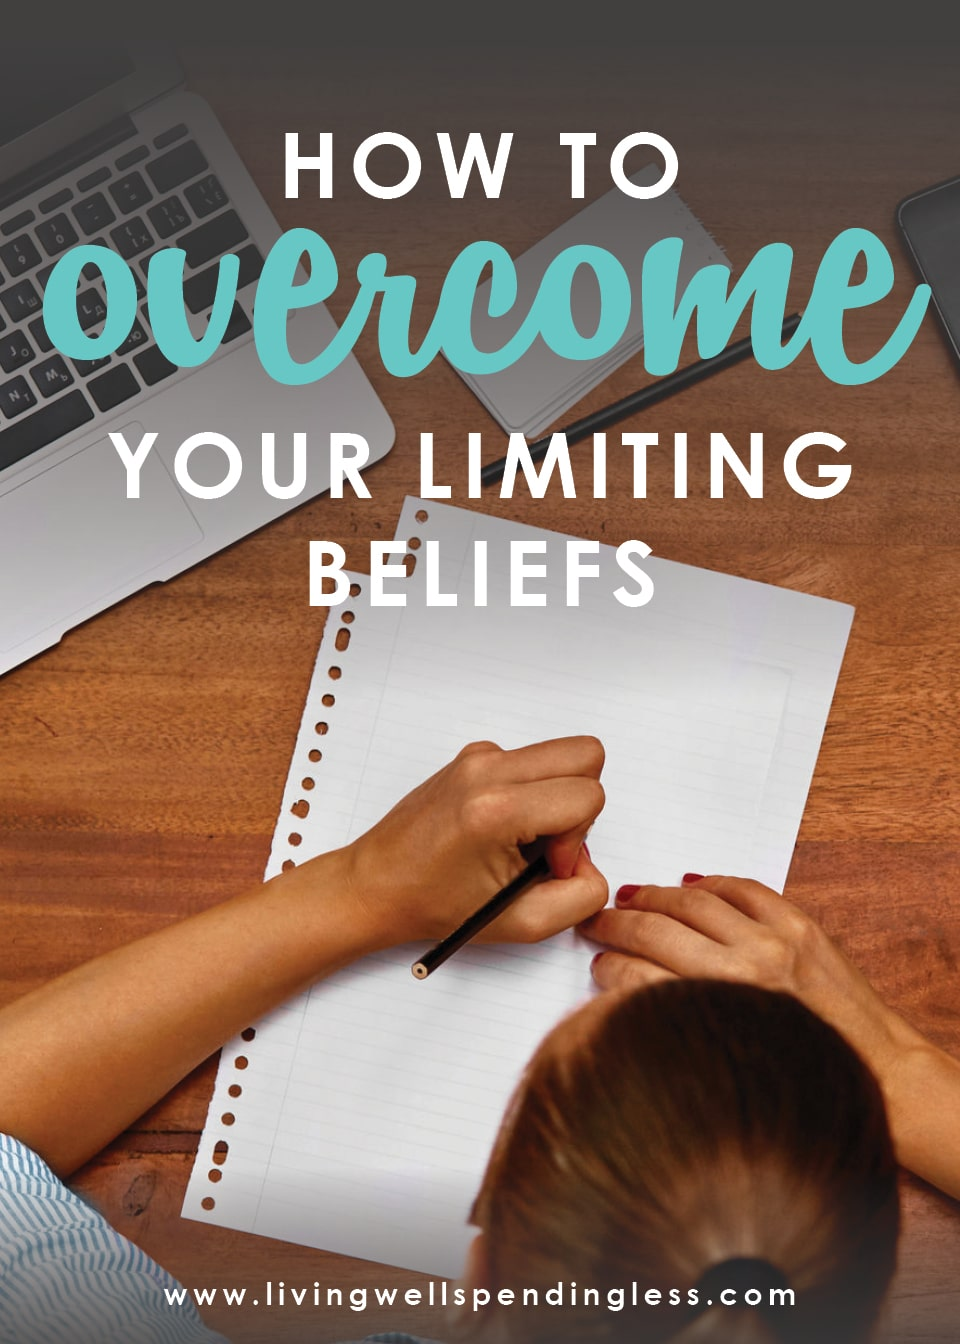 How to overcome your limiting beliefs.